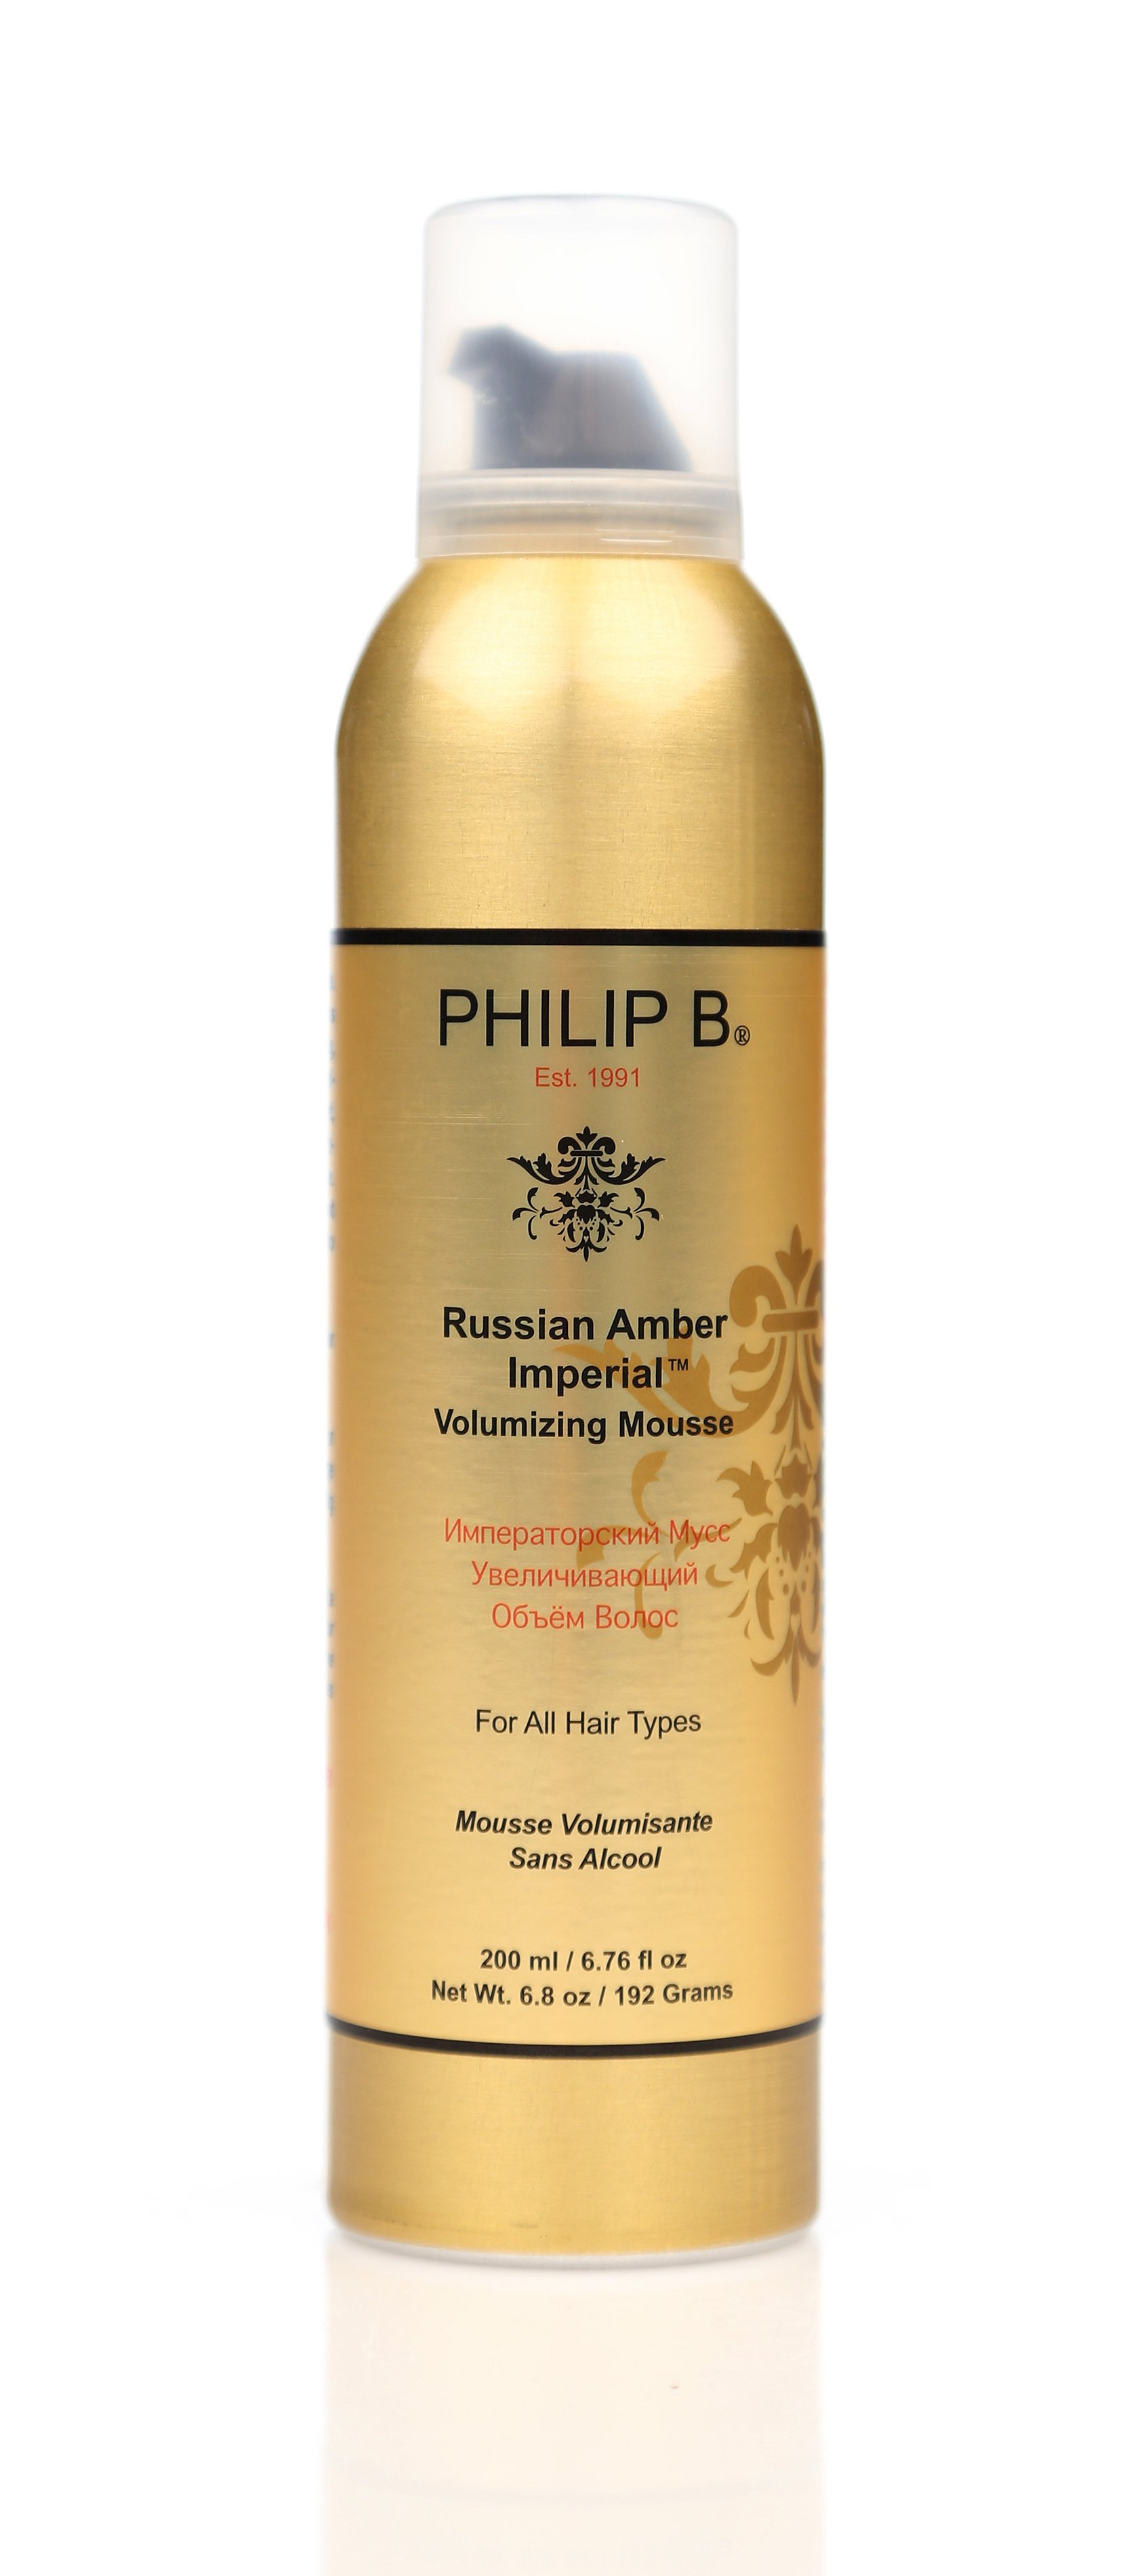 Philip B - Russian Amber Imperial Volumzing Mousse 200 ml